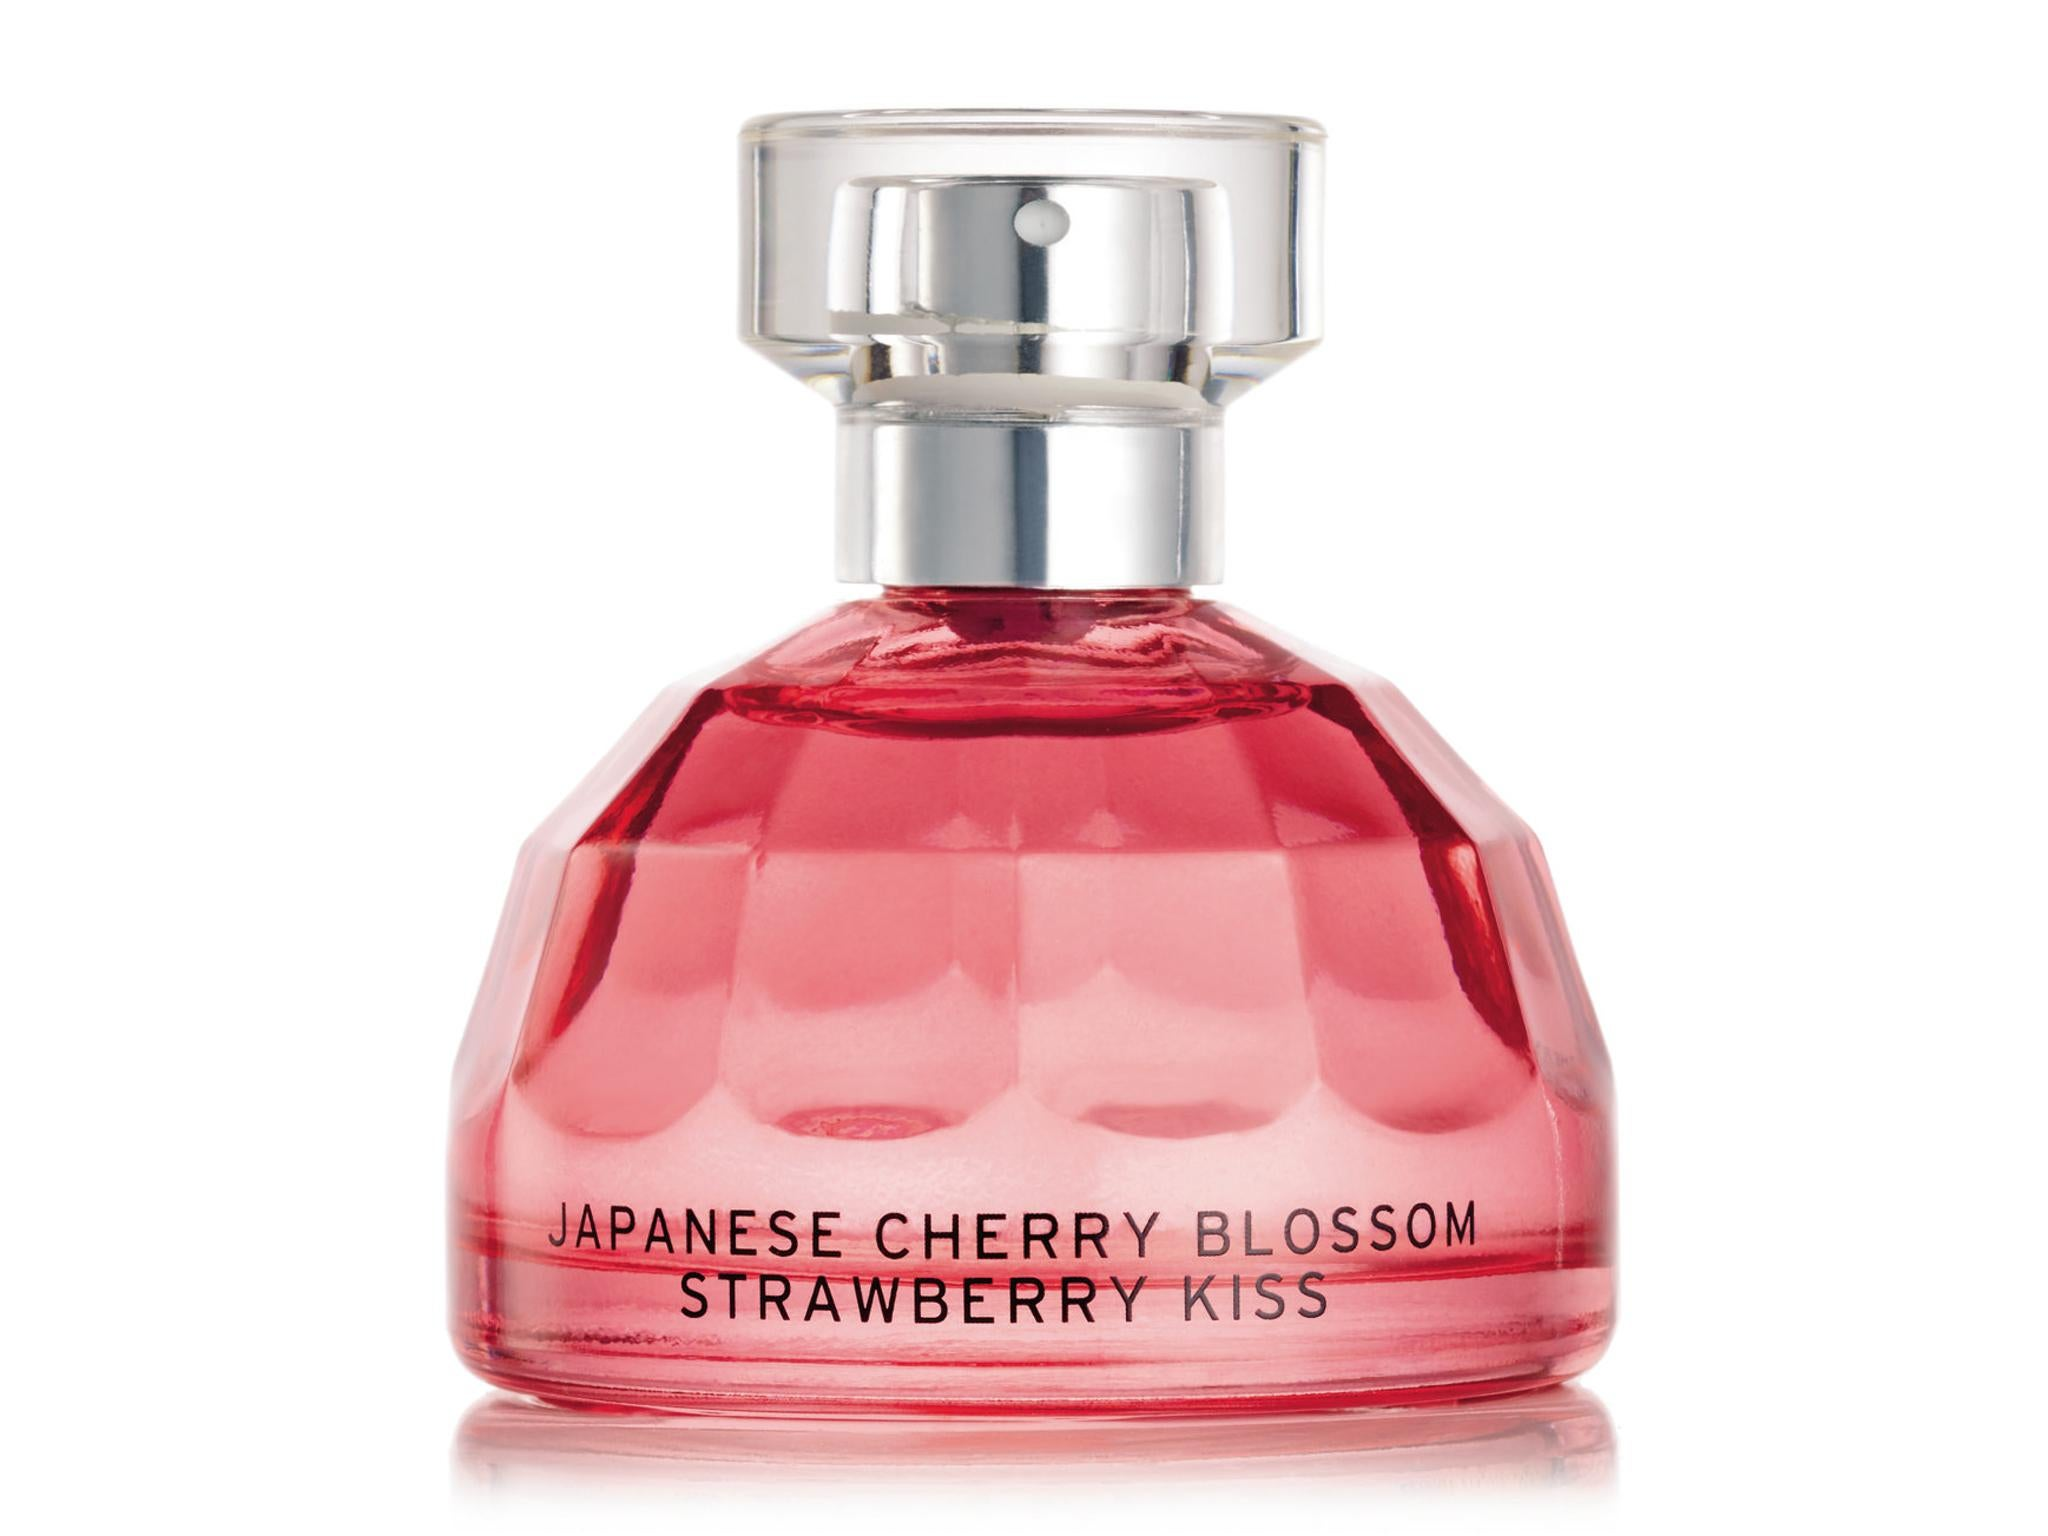 Miss Charming Fragrance Mist 11 Best Vegan Perfumes The Independent Body Shop Japanese Cherry Blossom Strawberry Kiss Eau De Toilette From 15 For 50ml